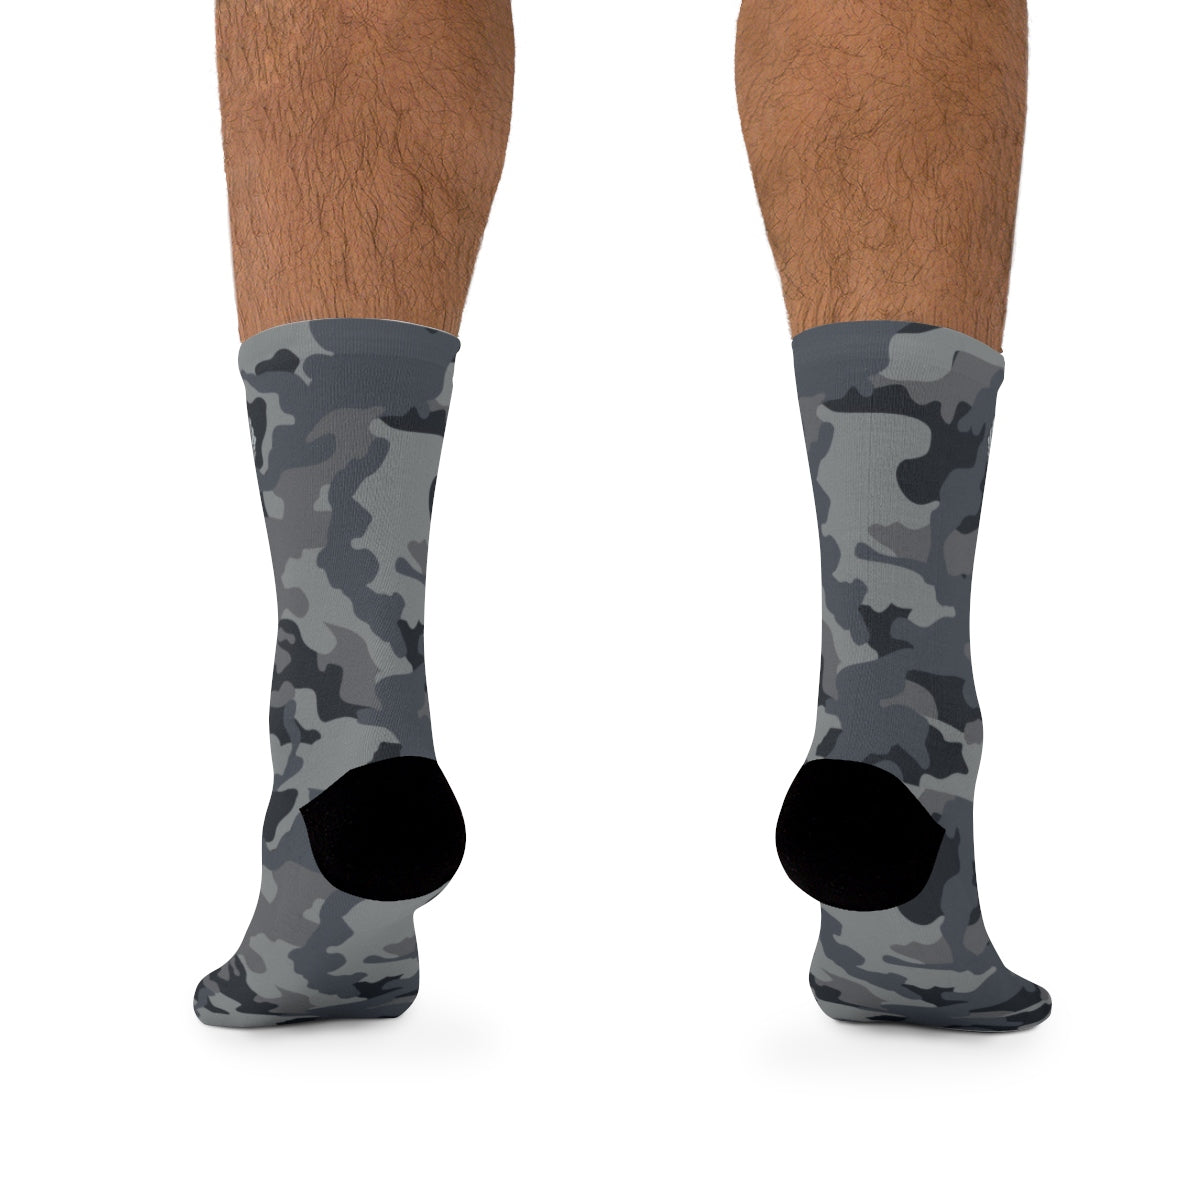 D*L*Y*S*I Dark Grey & Black CAMO Socks